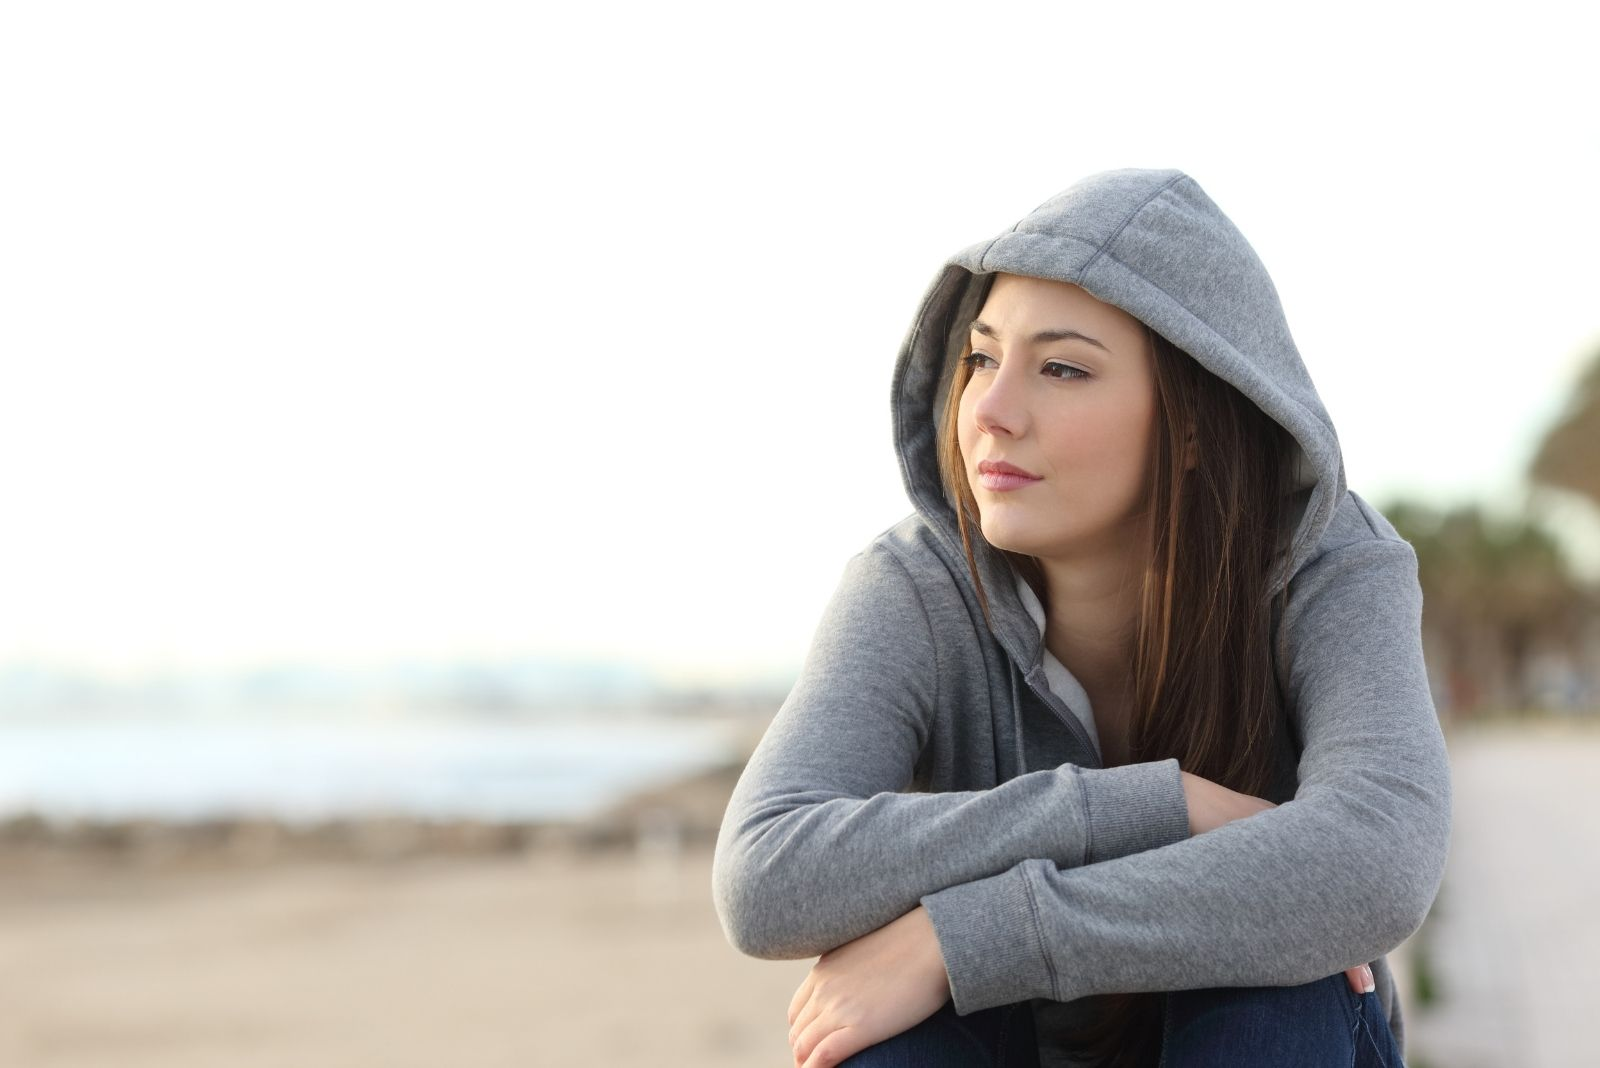 younng woman in a hoodie sitting on the beach thinking deeply